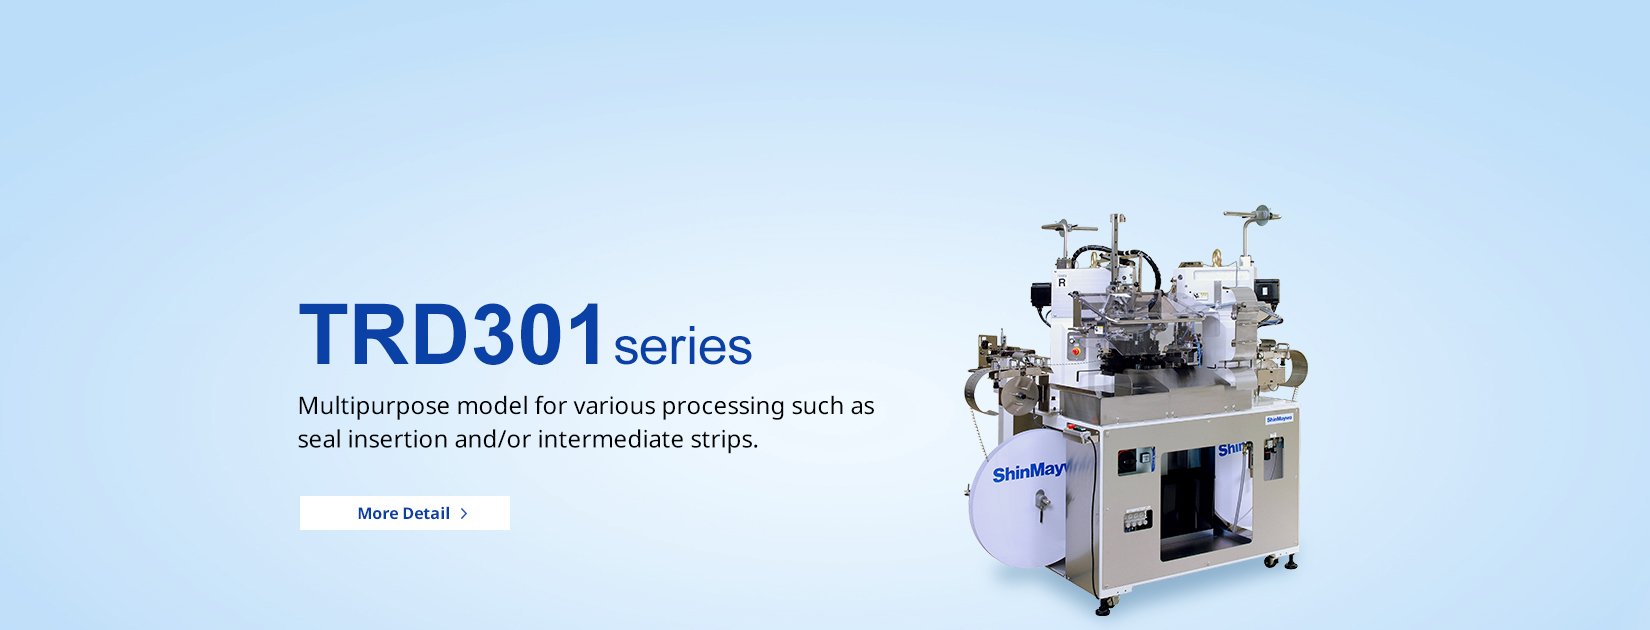 TRD301 series Multipurpose model for various processing such as seal insertion and/or intermediate strips.